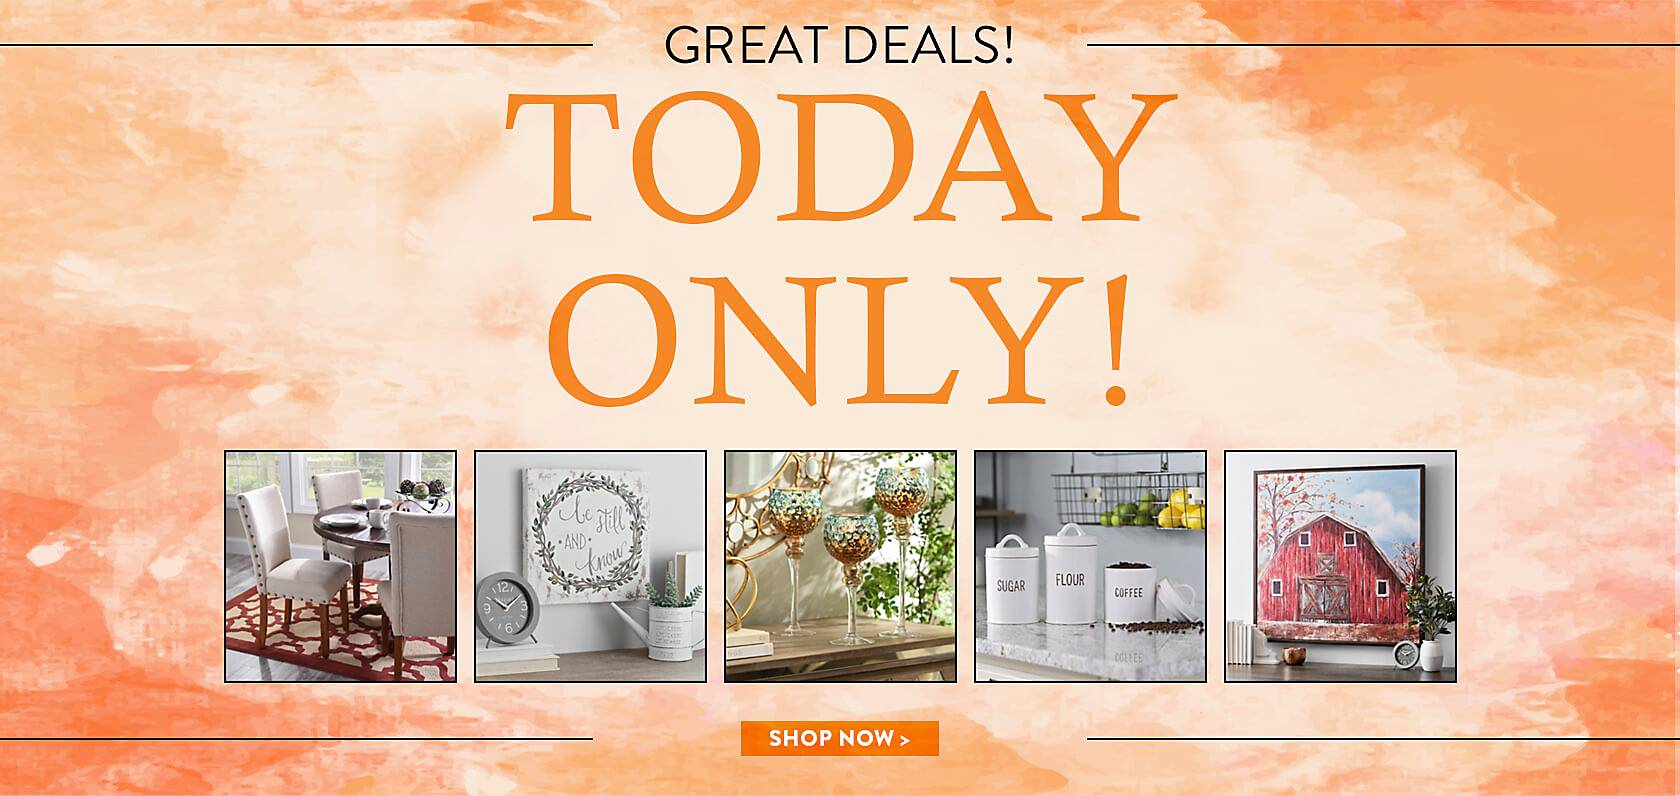 ONE DAY SALE! - GREAT Deals; LIMITED Time! - Shop Now